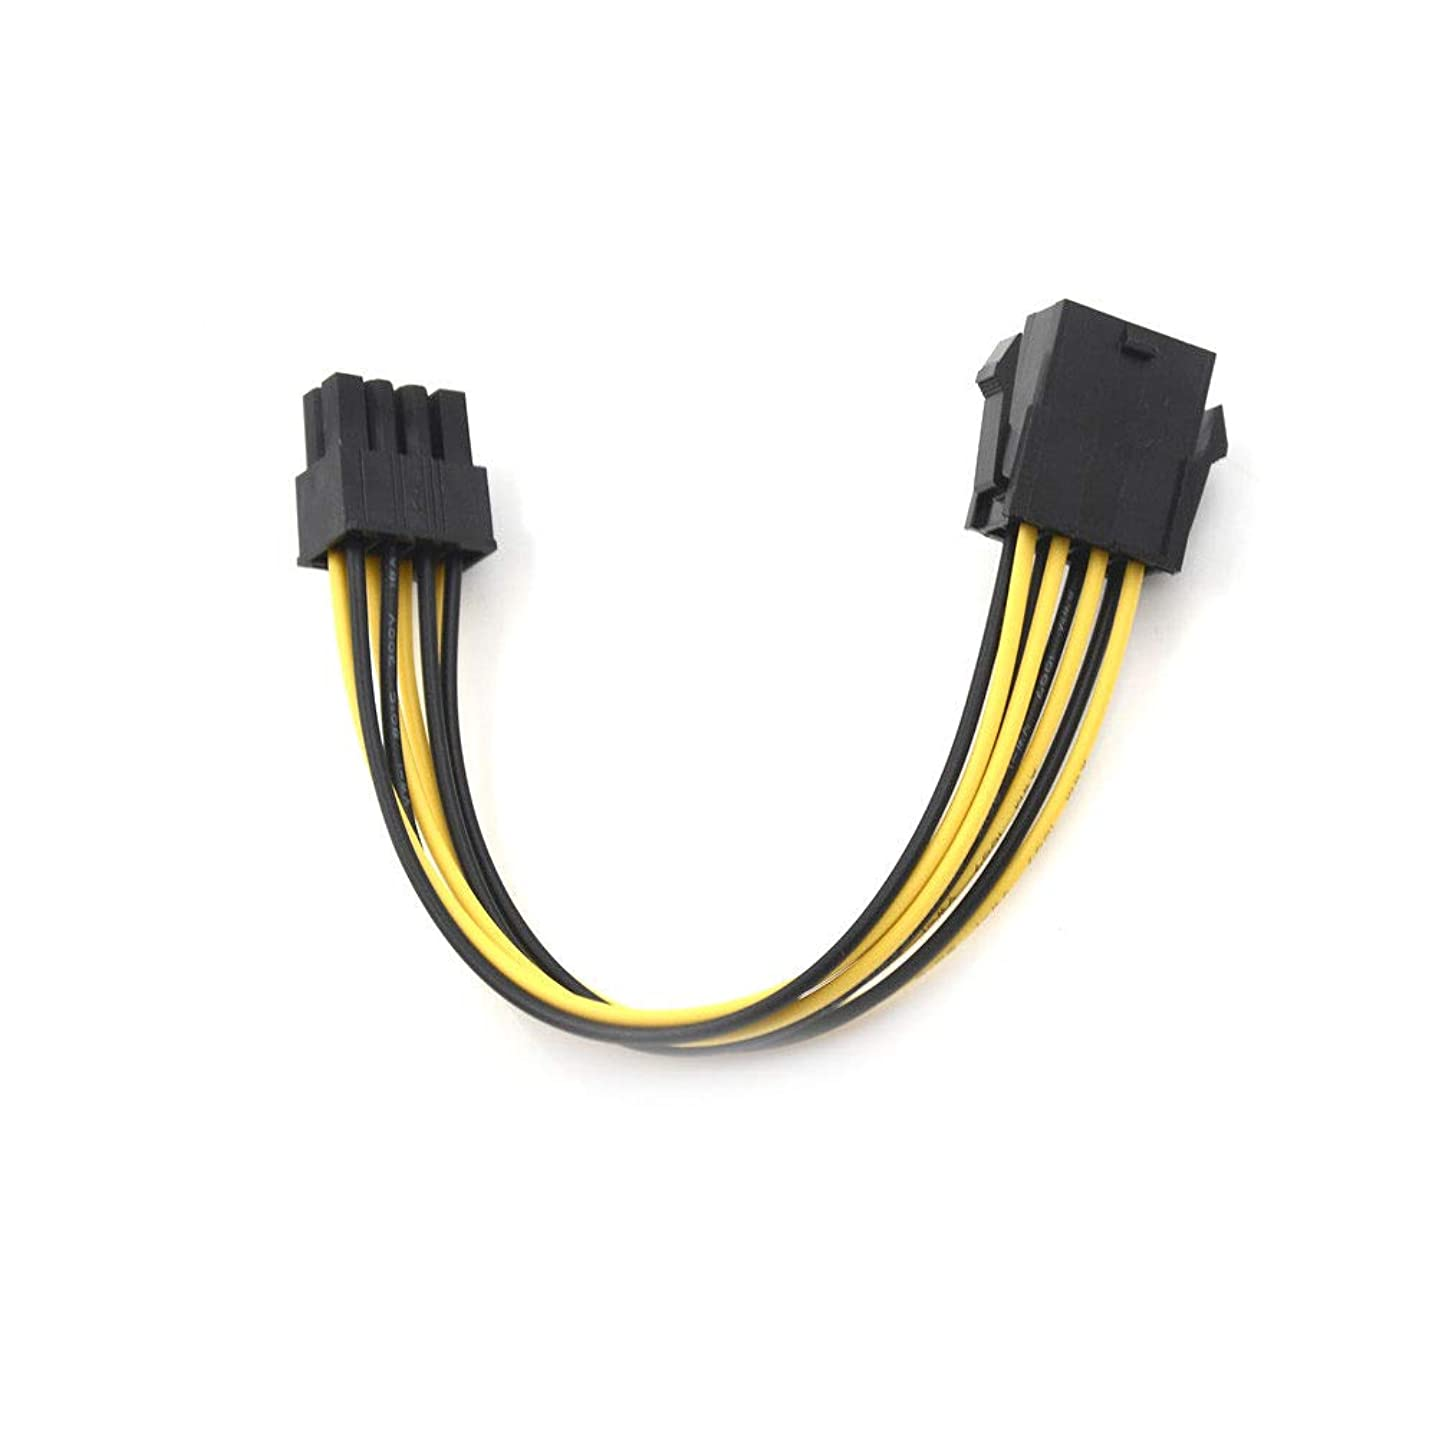 1PC 20cm Male to Female 8 Pin ATX EPS Cables Connectors Power Extension Computer Graphics Card